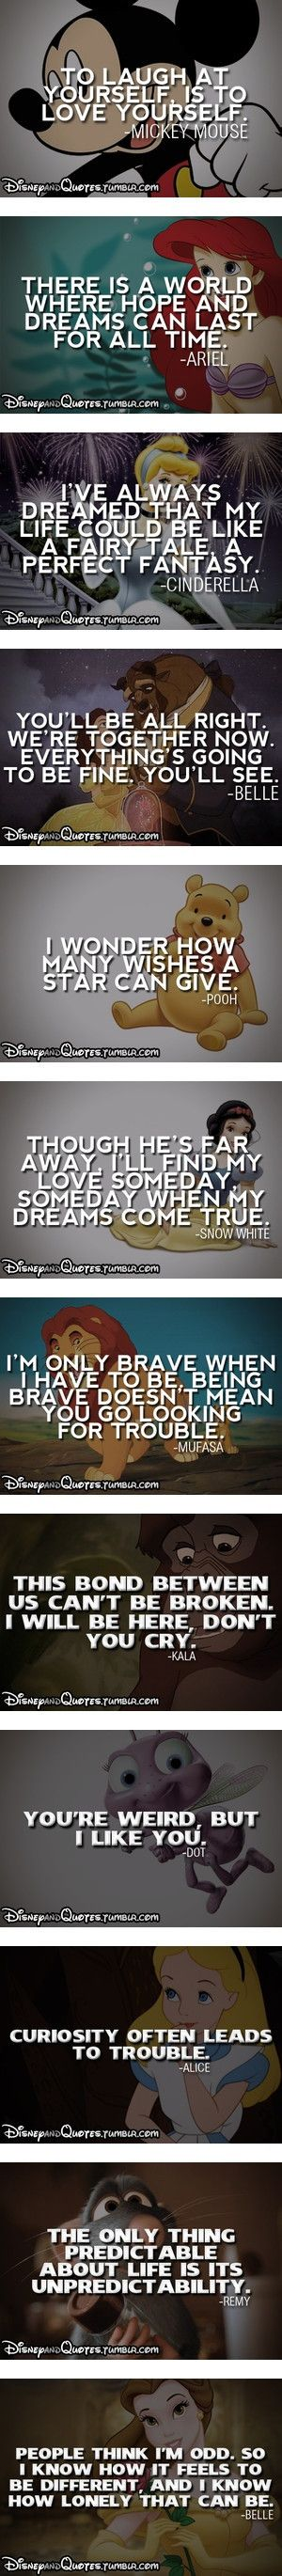 #Quotes from #Disney #movies